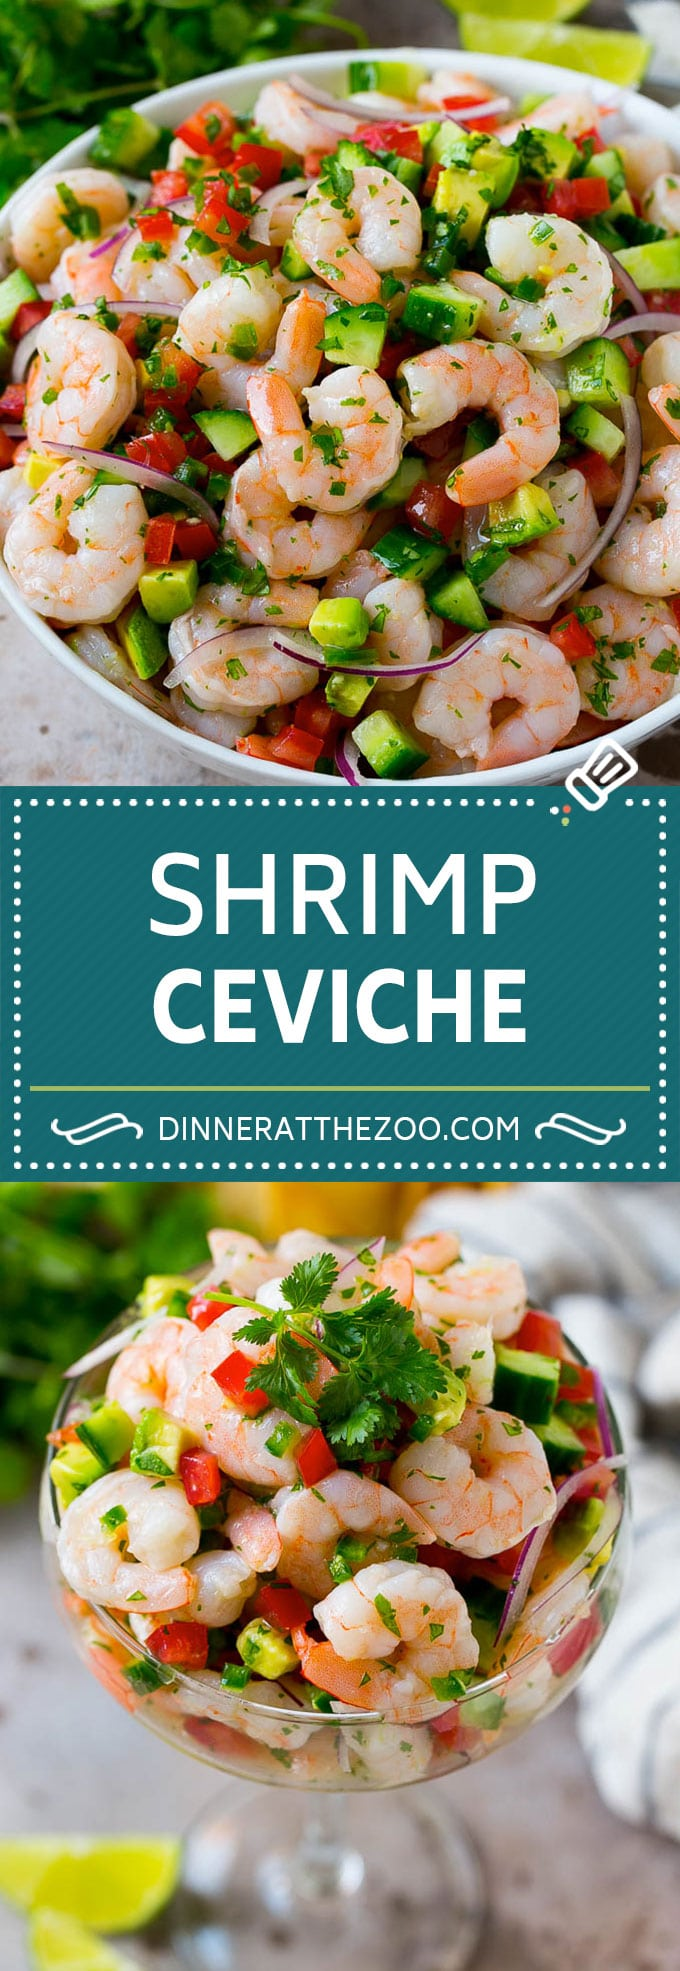 Shrimp Ceviche Recipe | Mexican Shrimp | Marinated Shrimp #shrimp #ceviche #cleaneating #healthy #lowcarb #keto #glutenfree #dinner #appetizer #dinneratthezoo